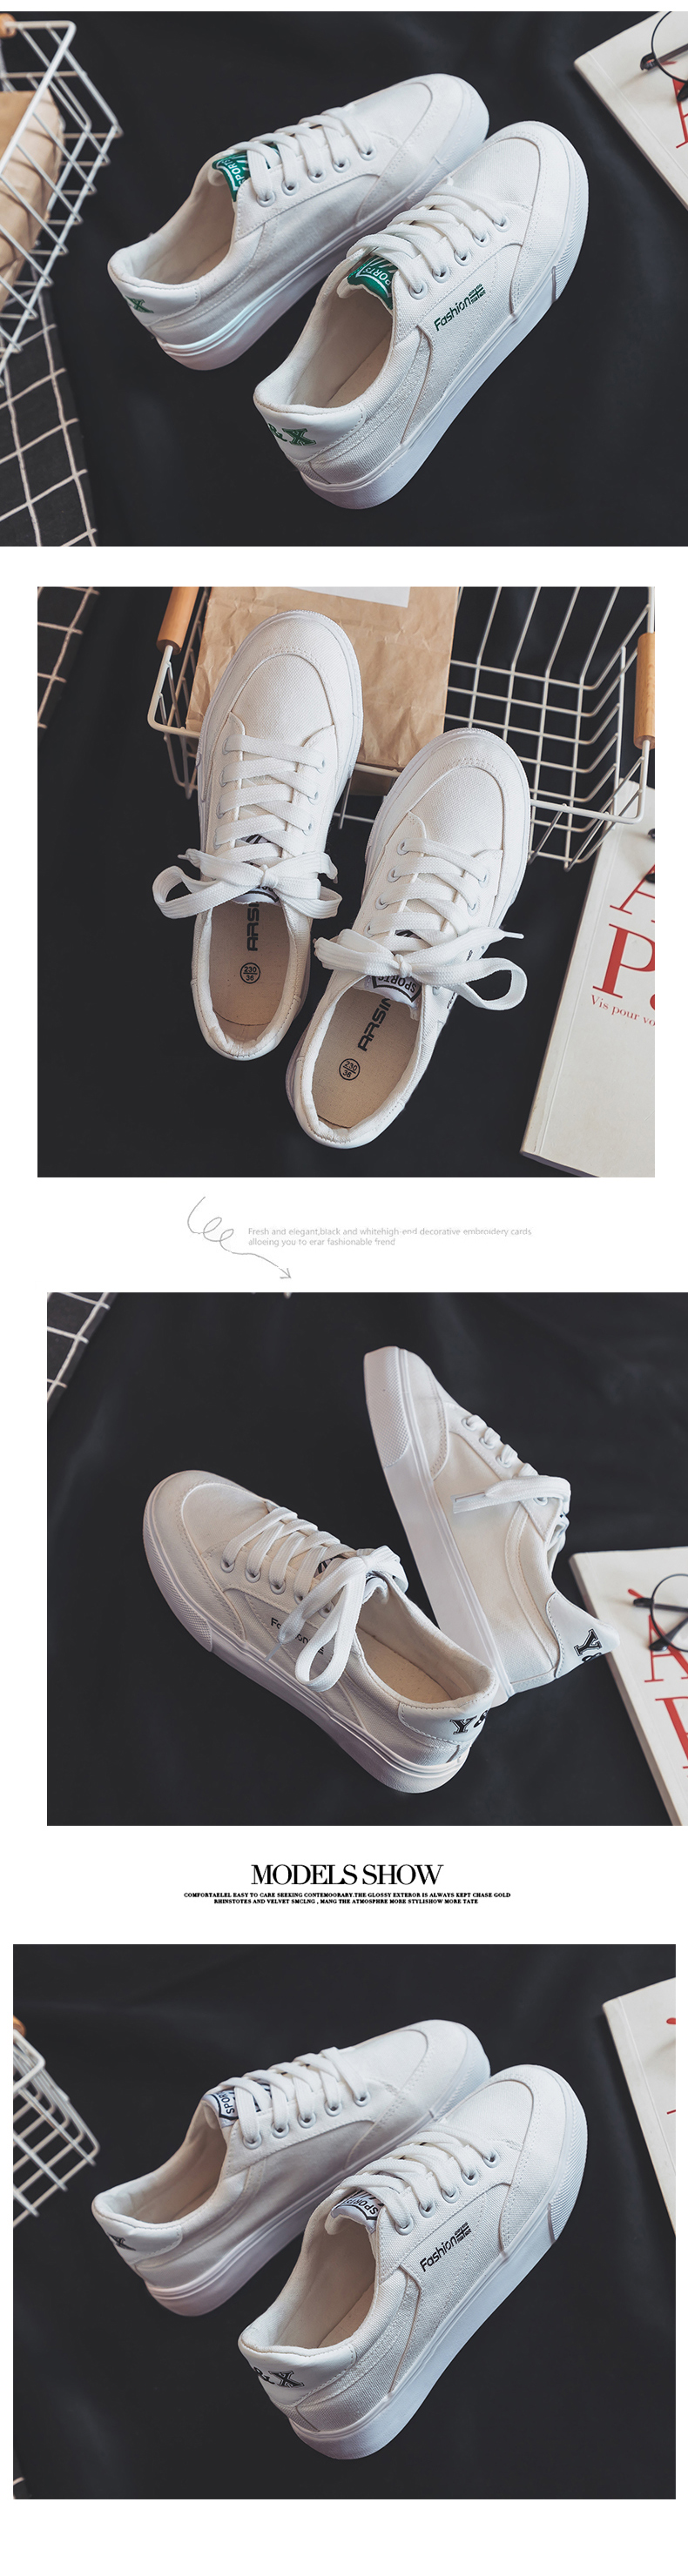 Fashion Style Women Canvas Vulcanized Shoes Simple Design Anti-Skid Sneakers for Female Comfortable Wear Resistant Casual Shoes 11